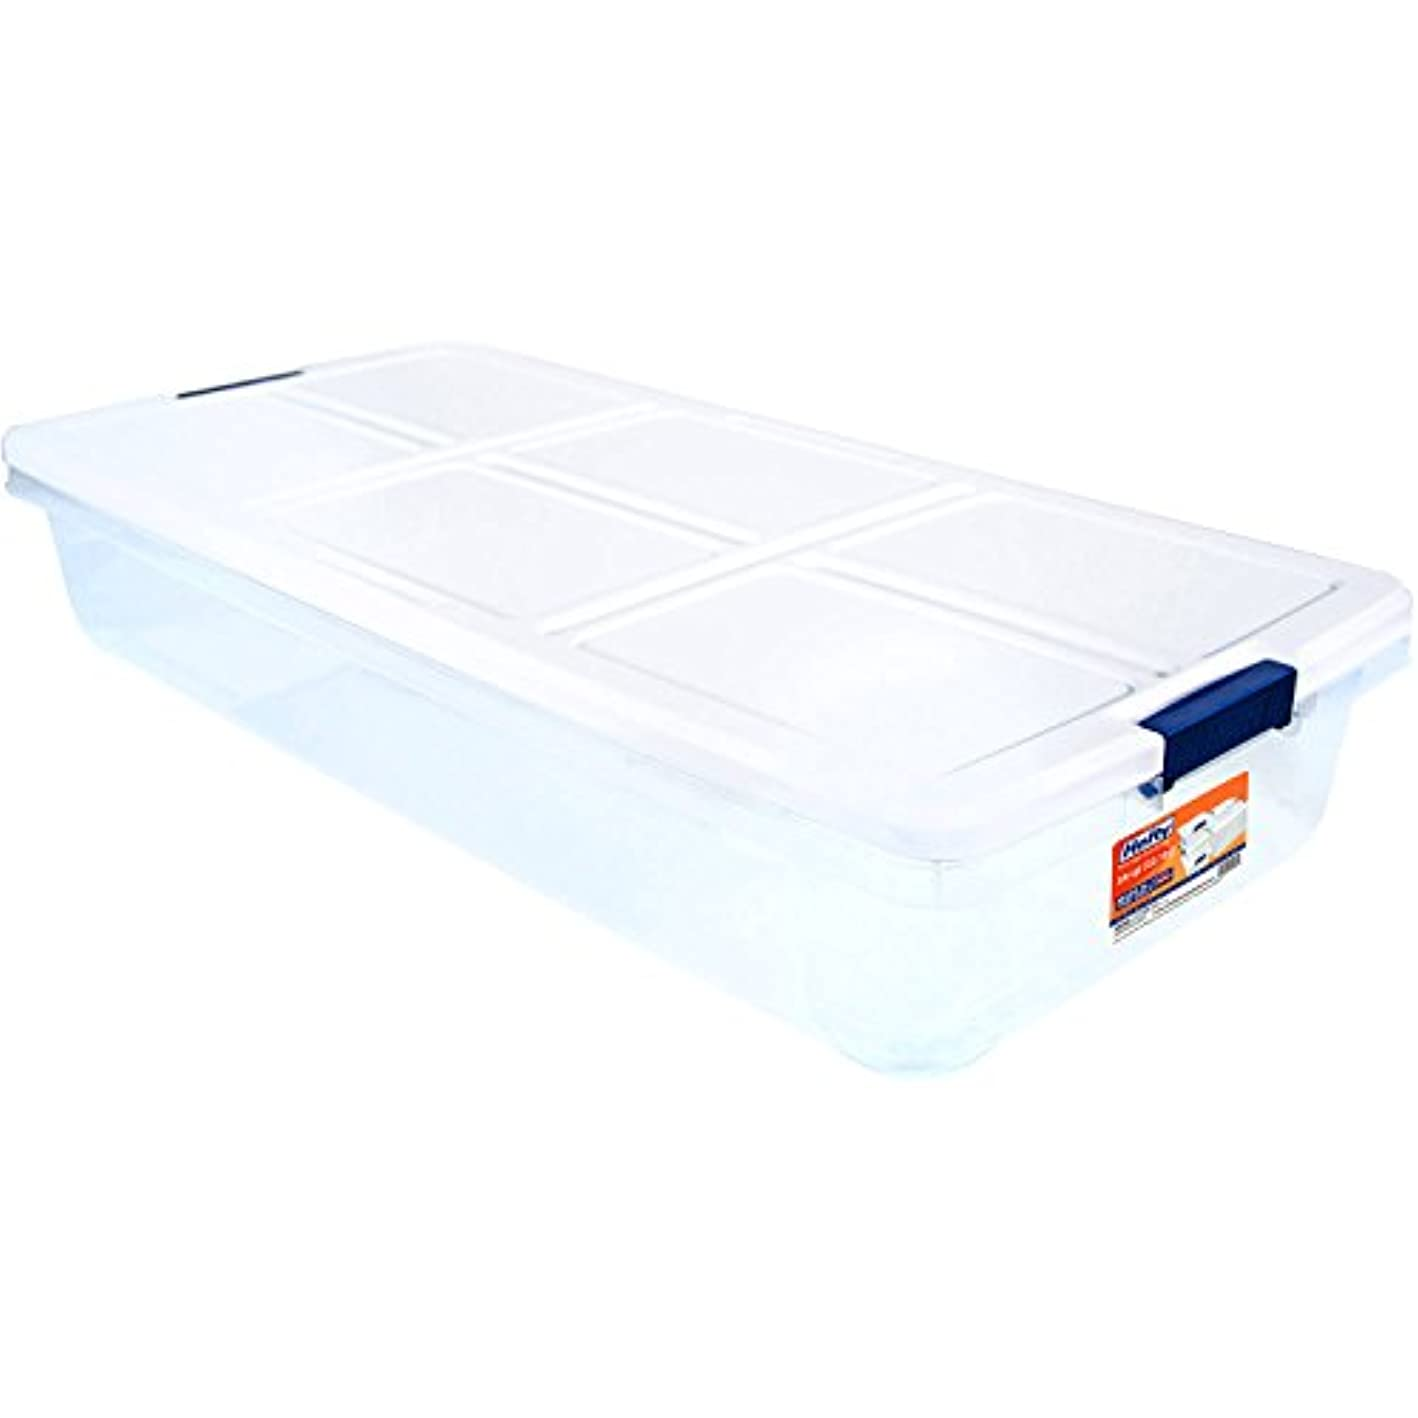 Hefty 52-Quart Latch Box for Under the Bed, White Lid and Blue Handles